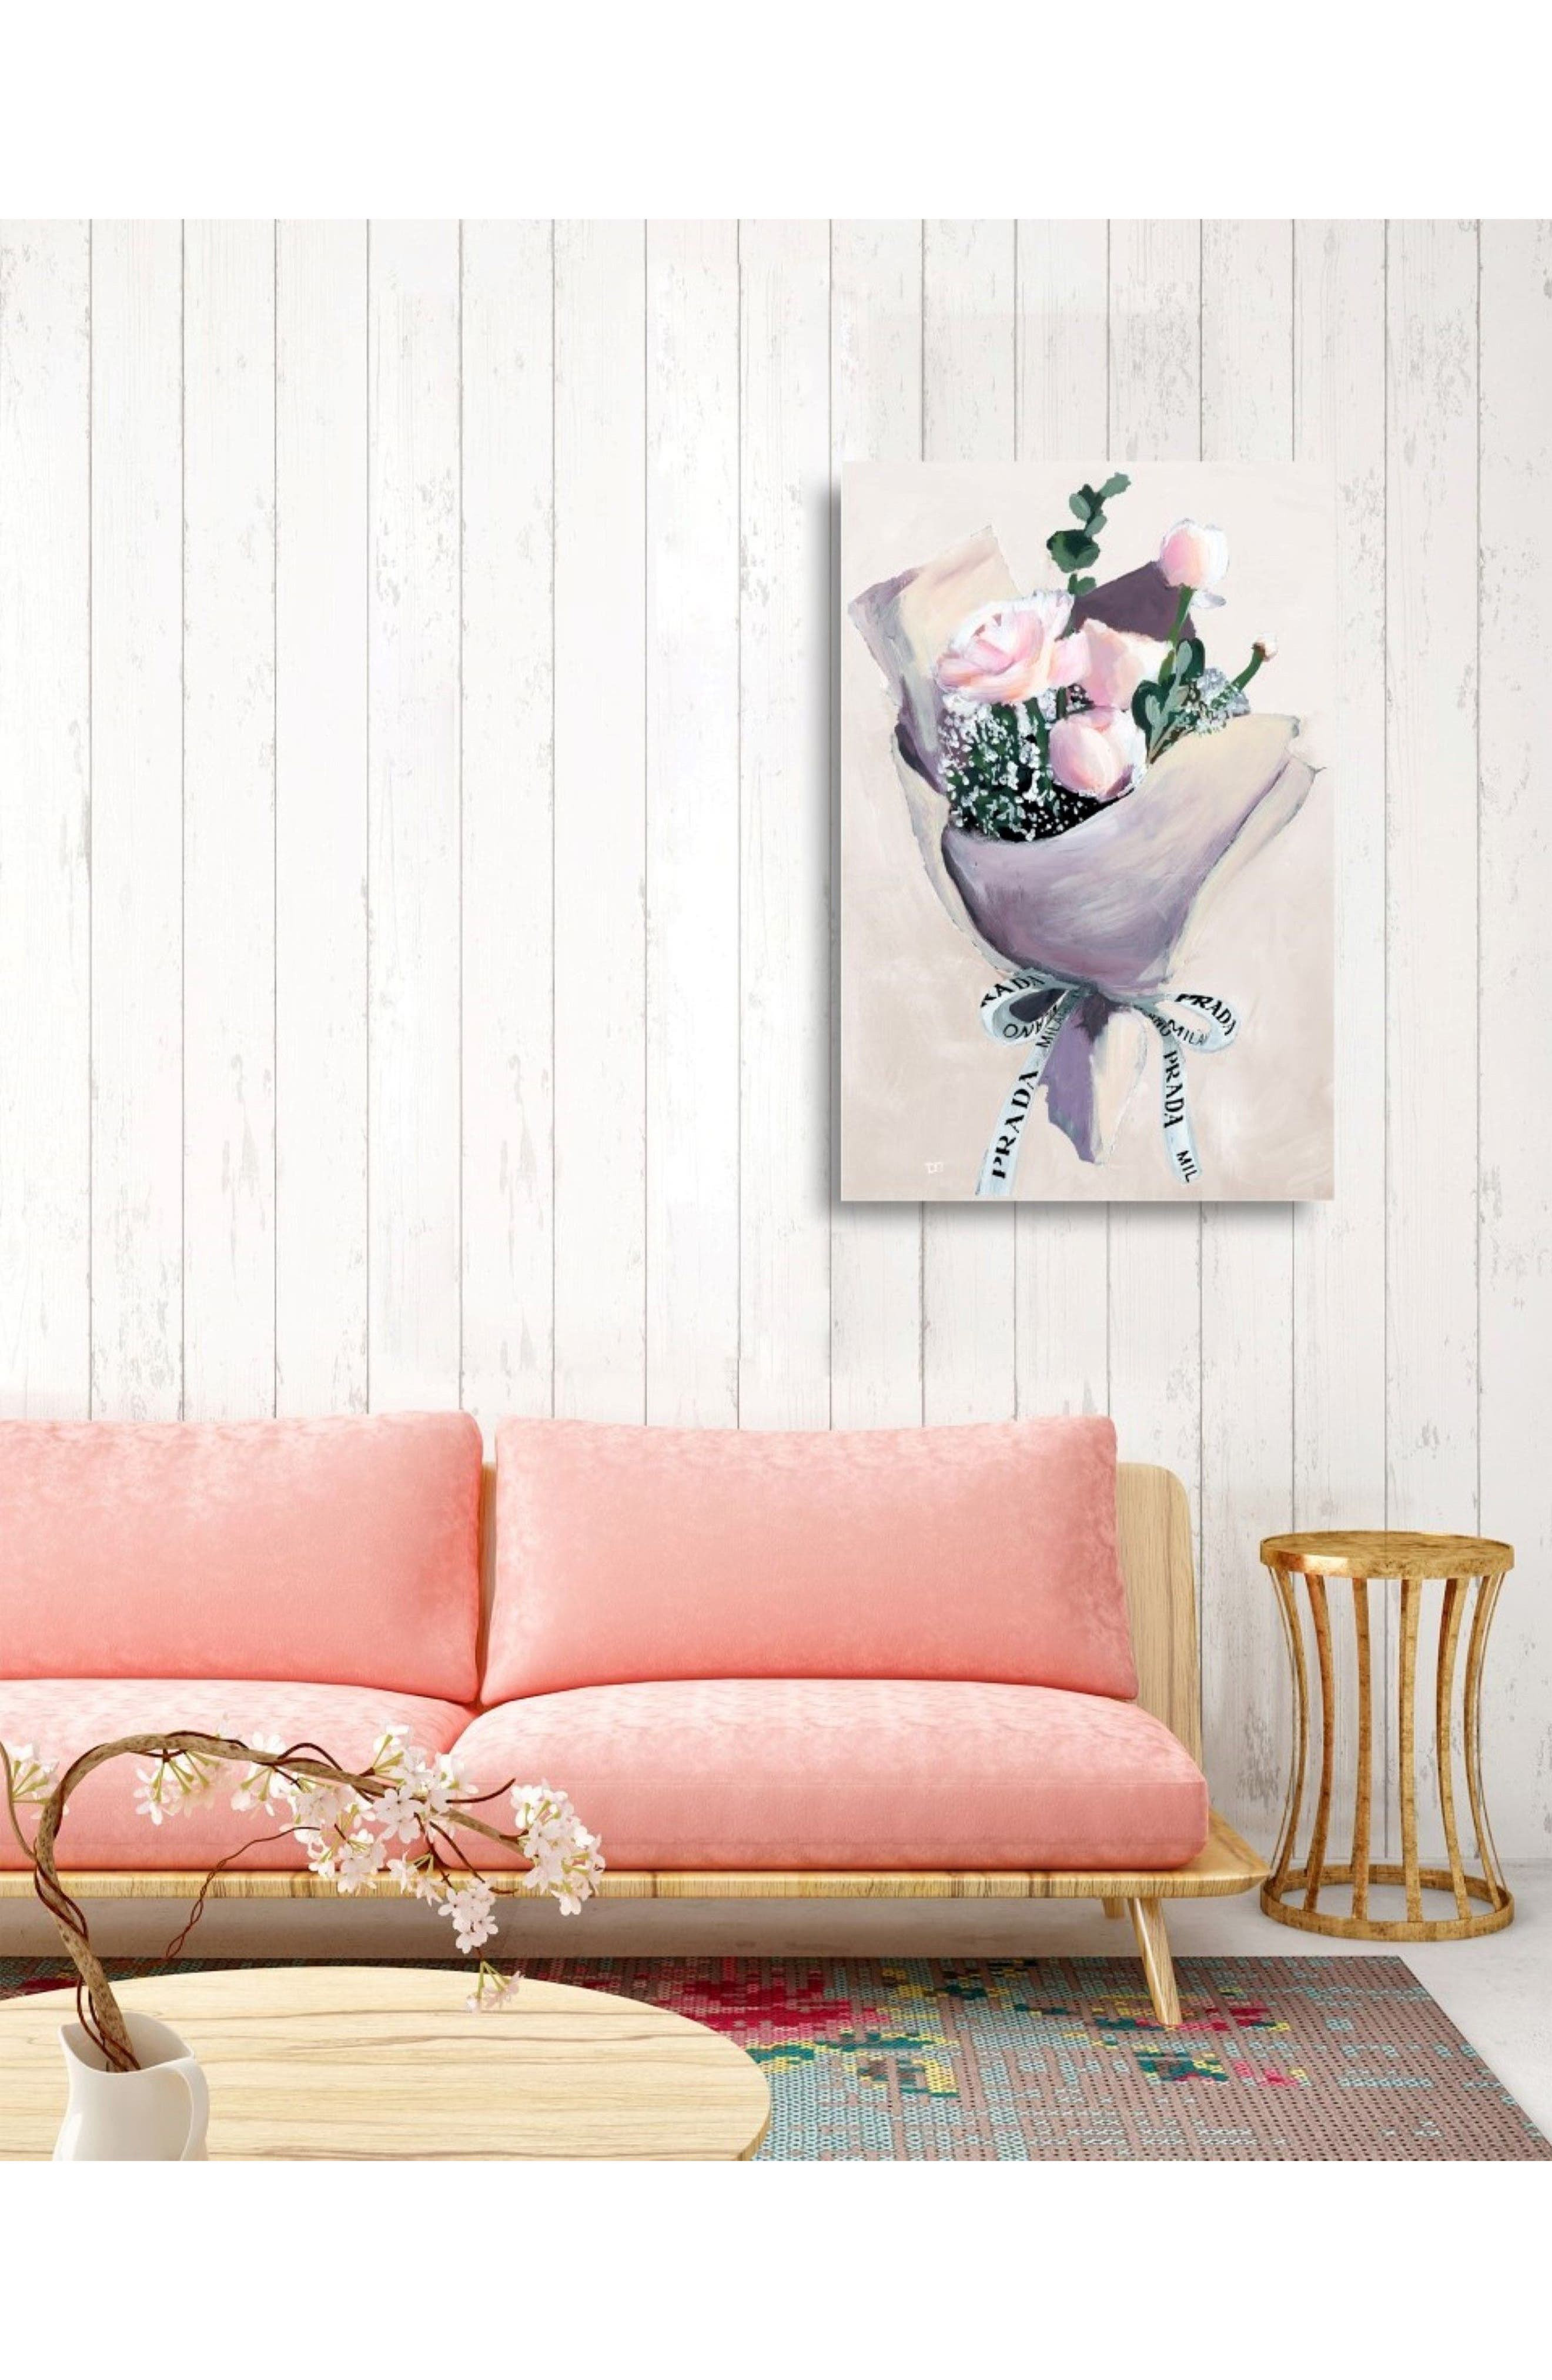 Delivery for Her Canvas Wall Art,                             Alternate thumbnail 2, color,                             650